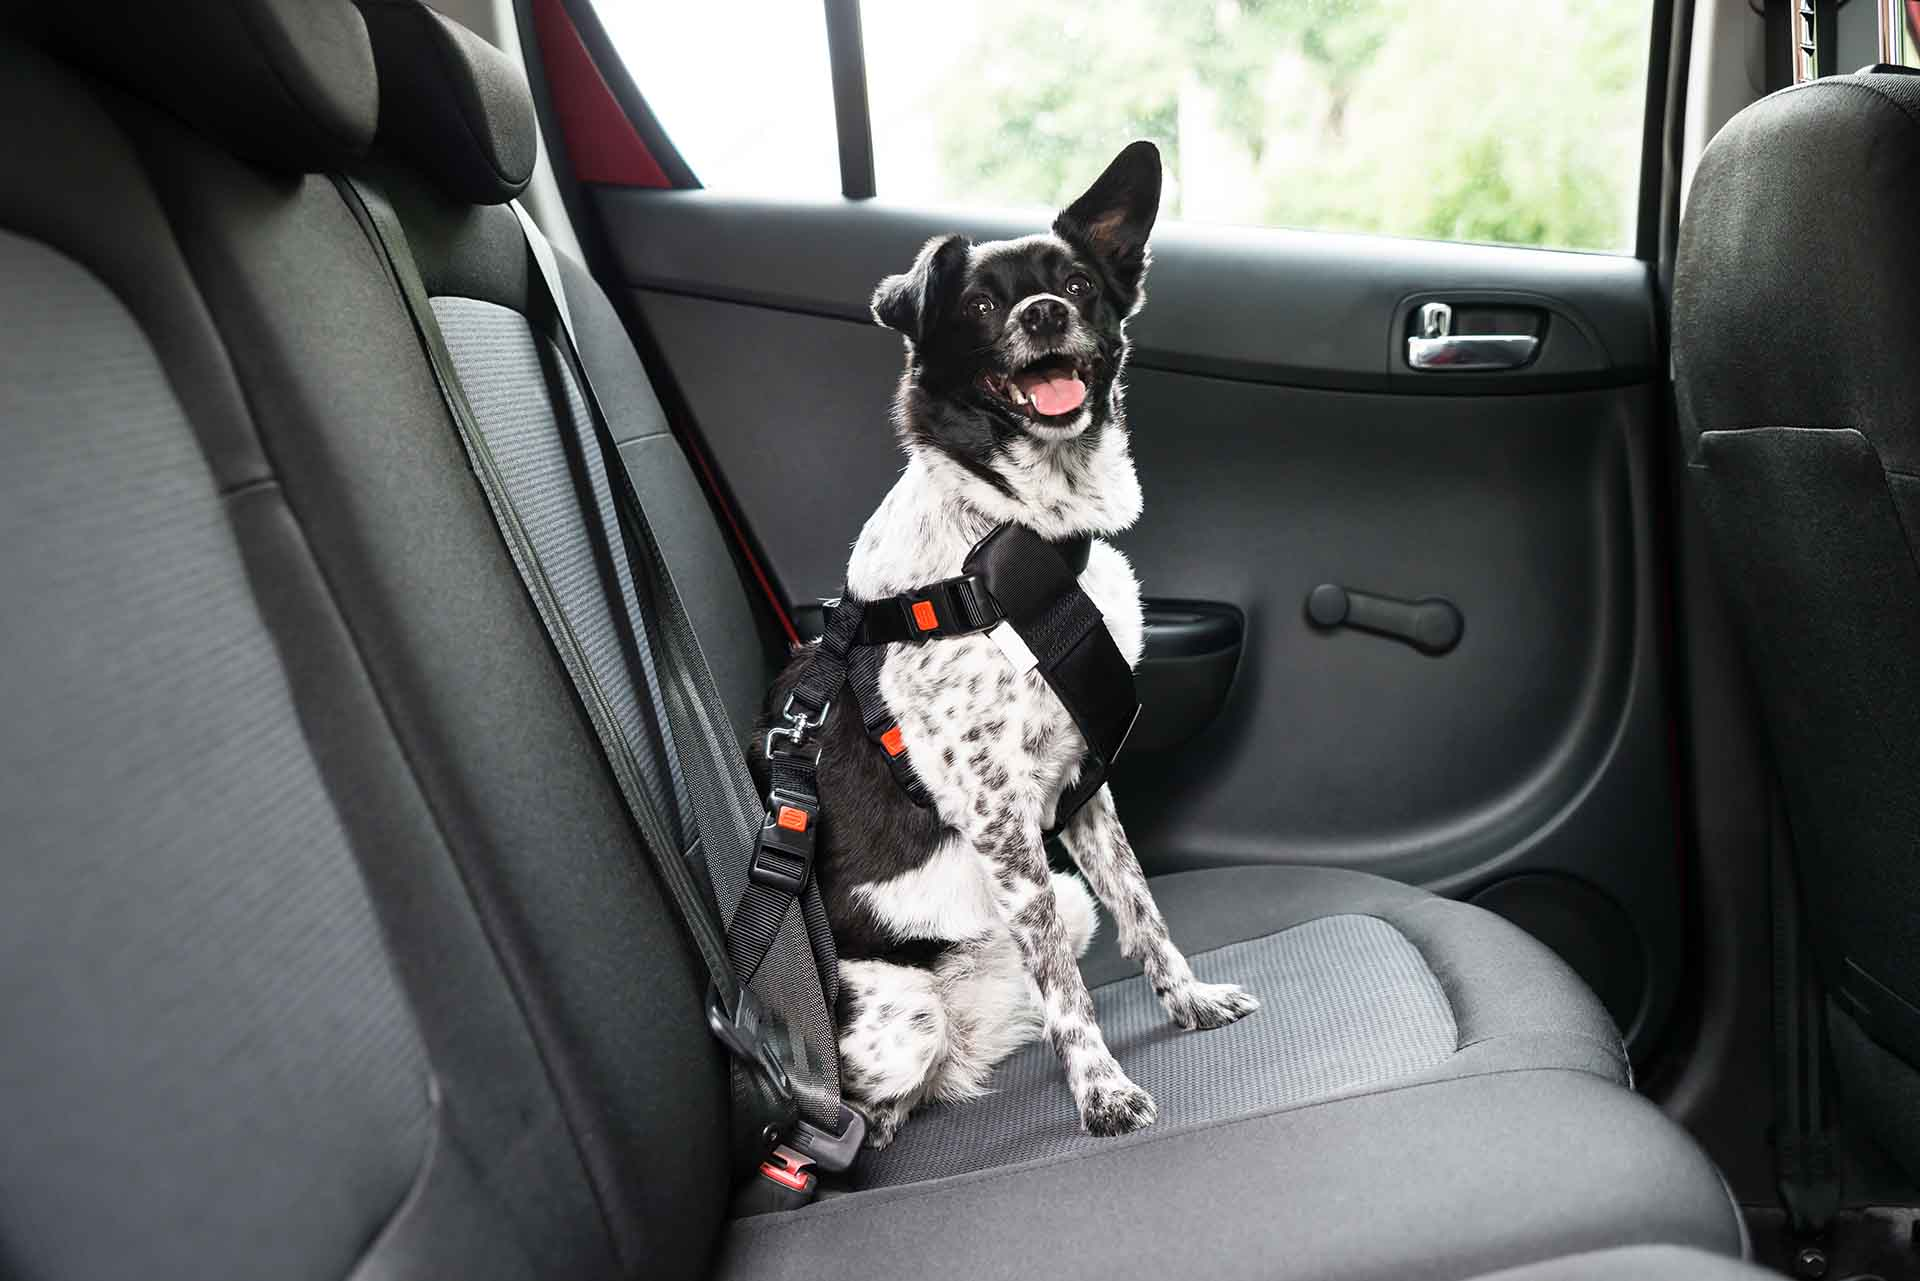 Dog With Sticking Out Tongue Sitting In A Car Seat with a seat belt on